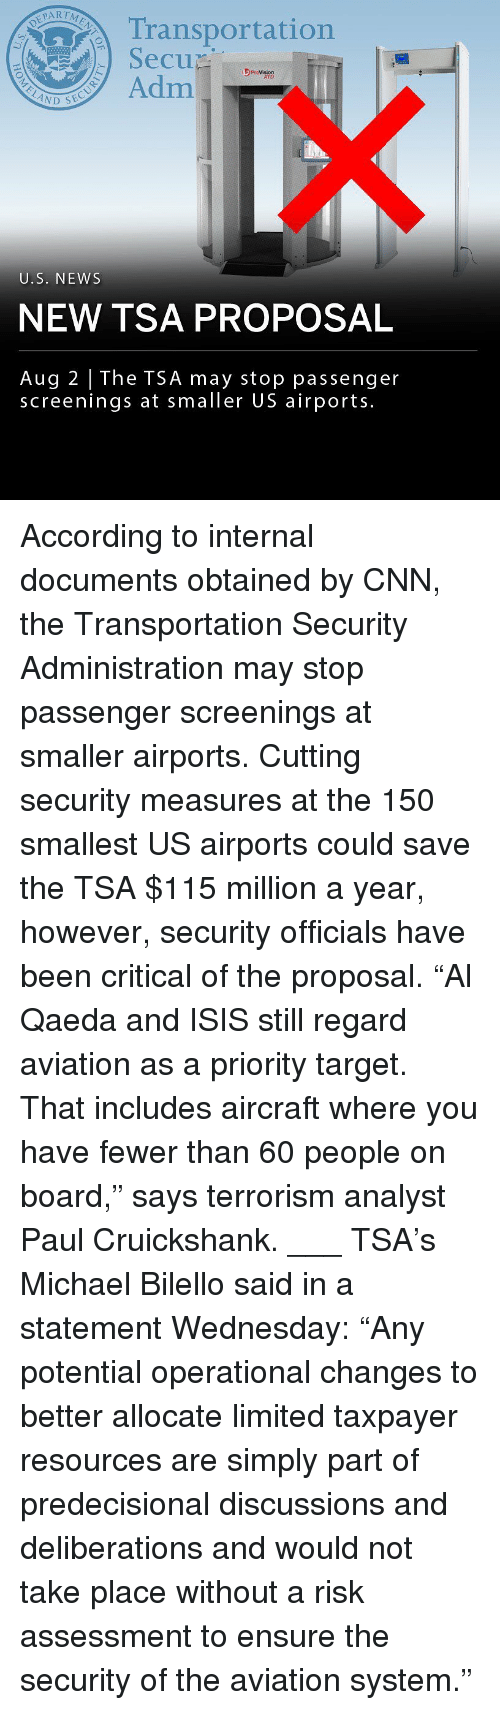 "the proposal: Transportation  SecuD  se  3 ProVision  ATD  Adm  U.S. NEWS  NEW TSA PROPOSAL  Aug 2 The TSA may stop passenger  screenings at smaller US airports. According to internal documents obtained by CNN, the Transportation Security Administration may stop passenger screenings at smaller airports. Cutting security measures at the 150 smallest US airports could save the TSA $115 million a year, however, security officials have been critical of the proposal. ""Al Qaeda and ISIS still regard aviation as a priority target. That includes aircraft where you have fewer than 60 people on board,"" says terrorism analyst Paul Cruickshank. ___ TSA's Michael Bilello said in a statement Wednesday: ""Any potential operational changes to better allocate limited taxpayer resources are simply part of predecisional discussions and deliberations and would not take place without a risk assessment to ensure the security of the aviation system."""